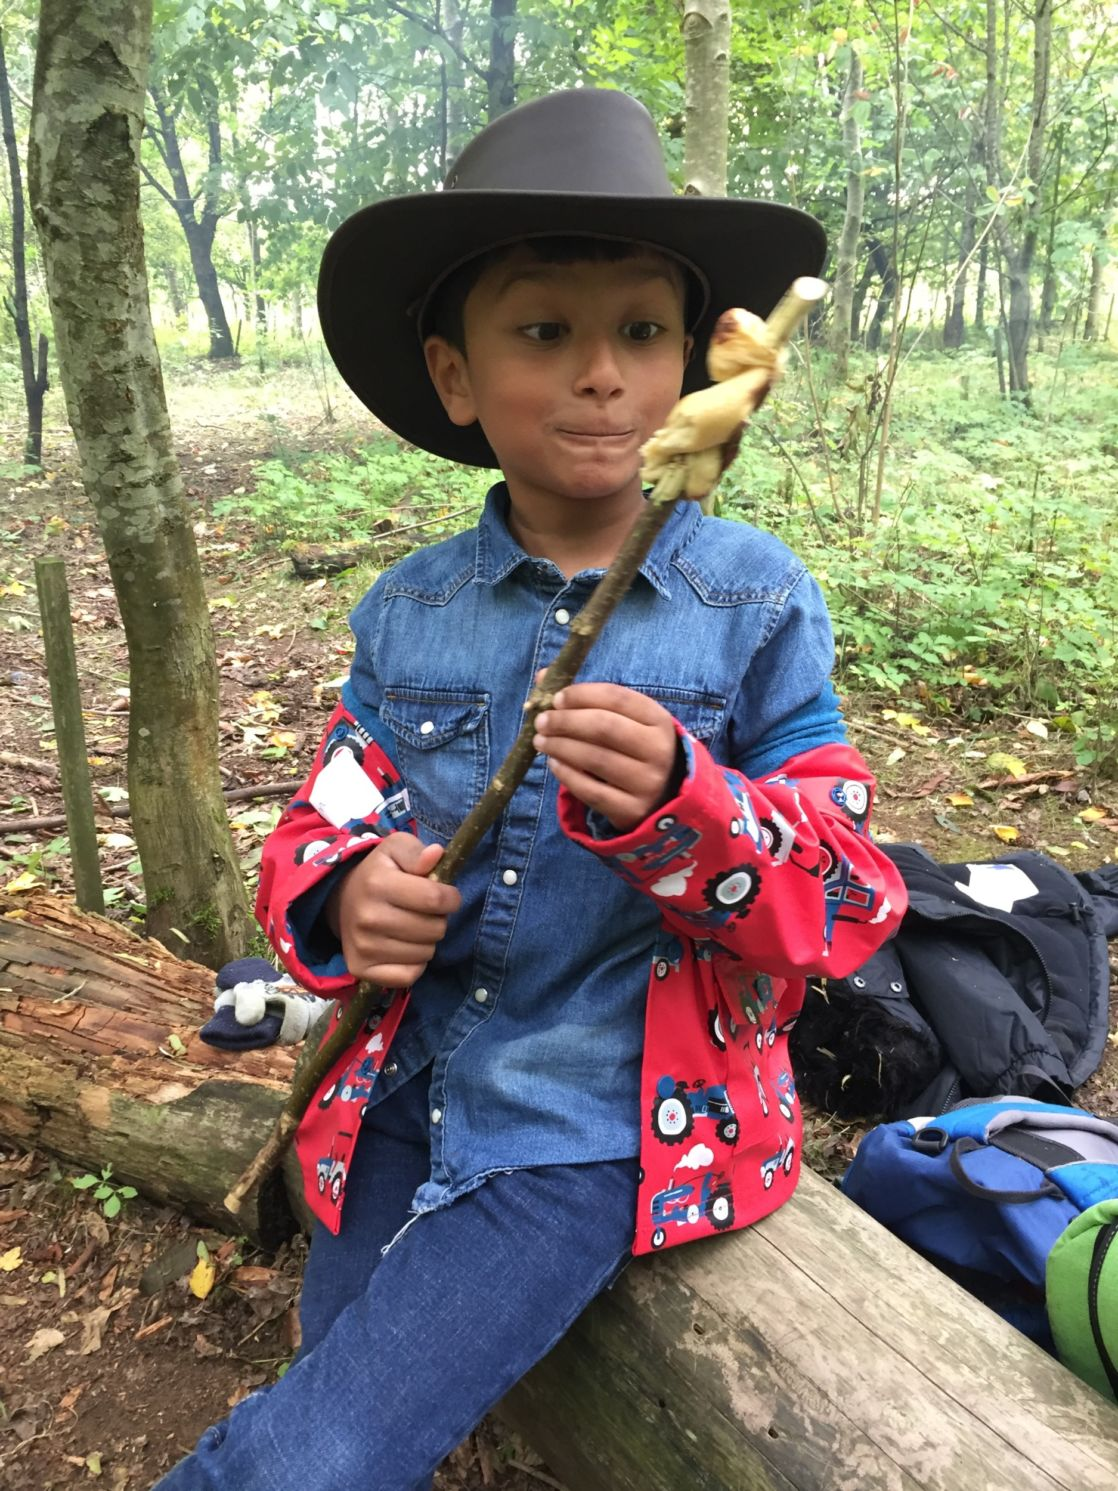 wycliffe boy in the woods holding a stick